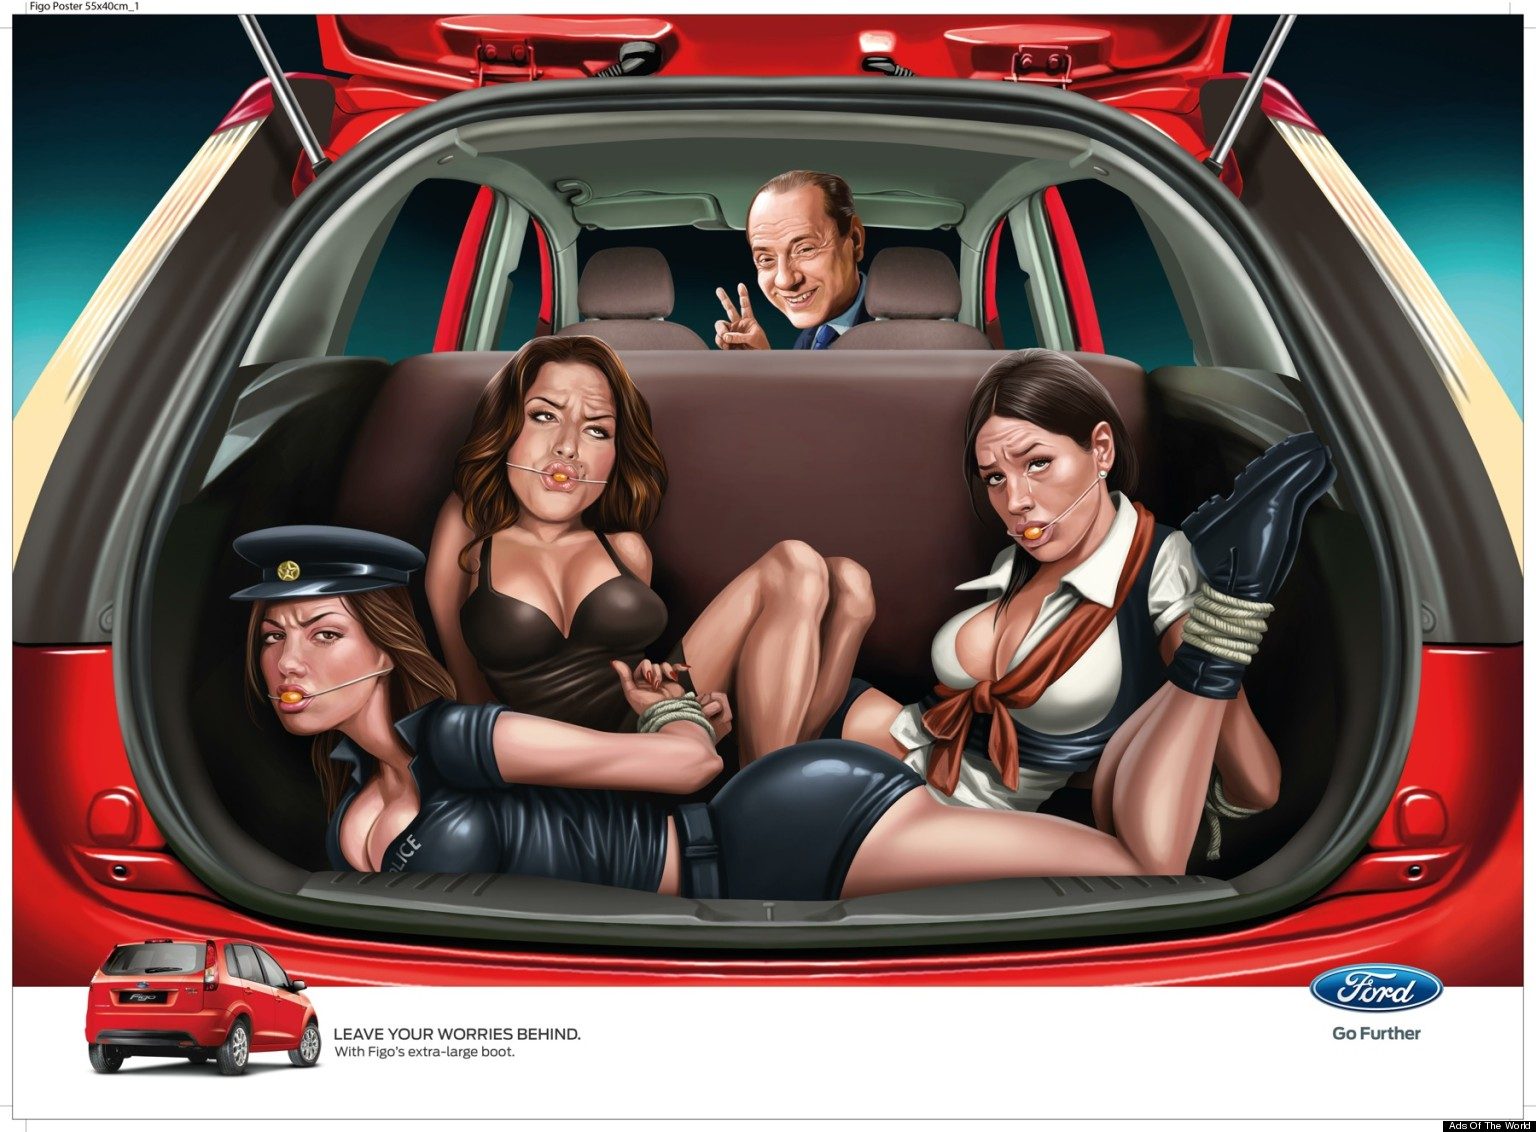 Ford india ad car company ad agency apologize for figo ad showing gagged bound women image huffpost